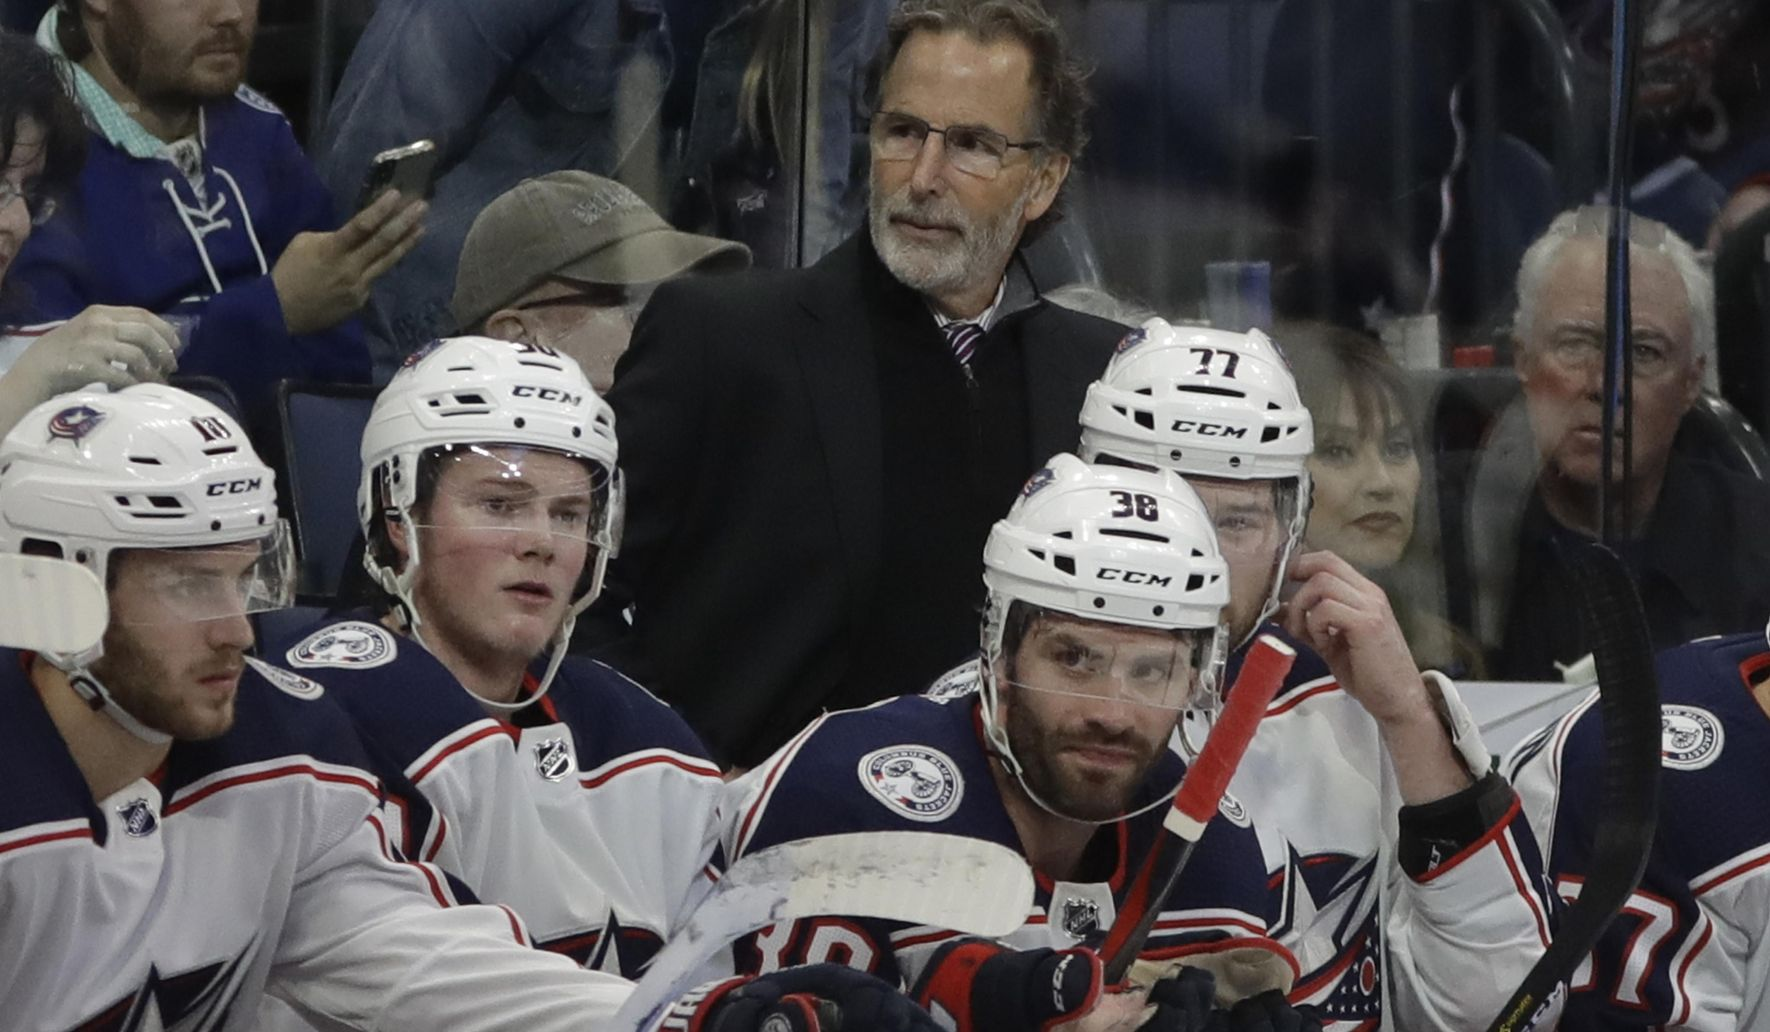 Blue_jackets_moving_on_hockey_79953_c0-232-4092-2617_s1770x1032